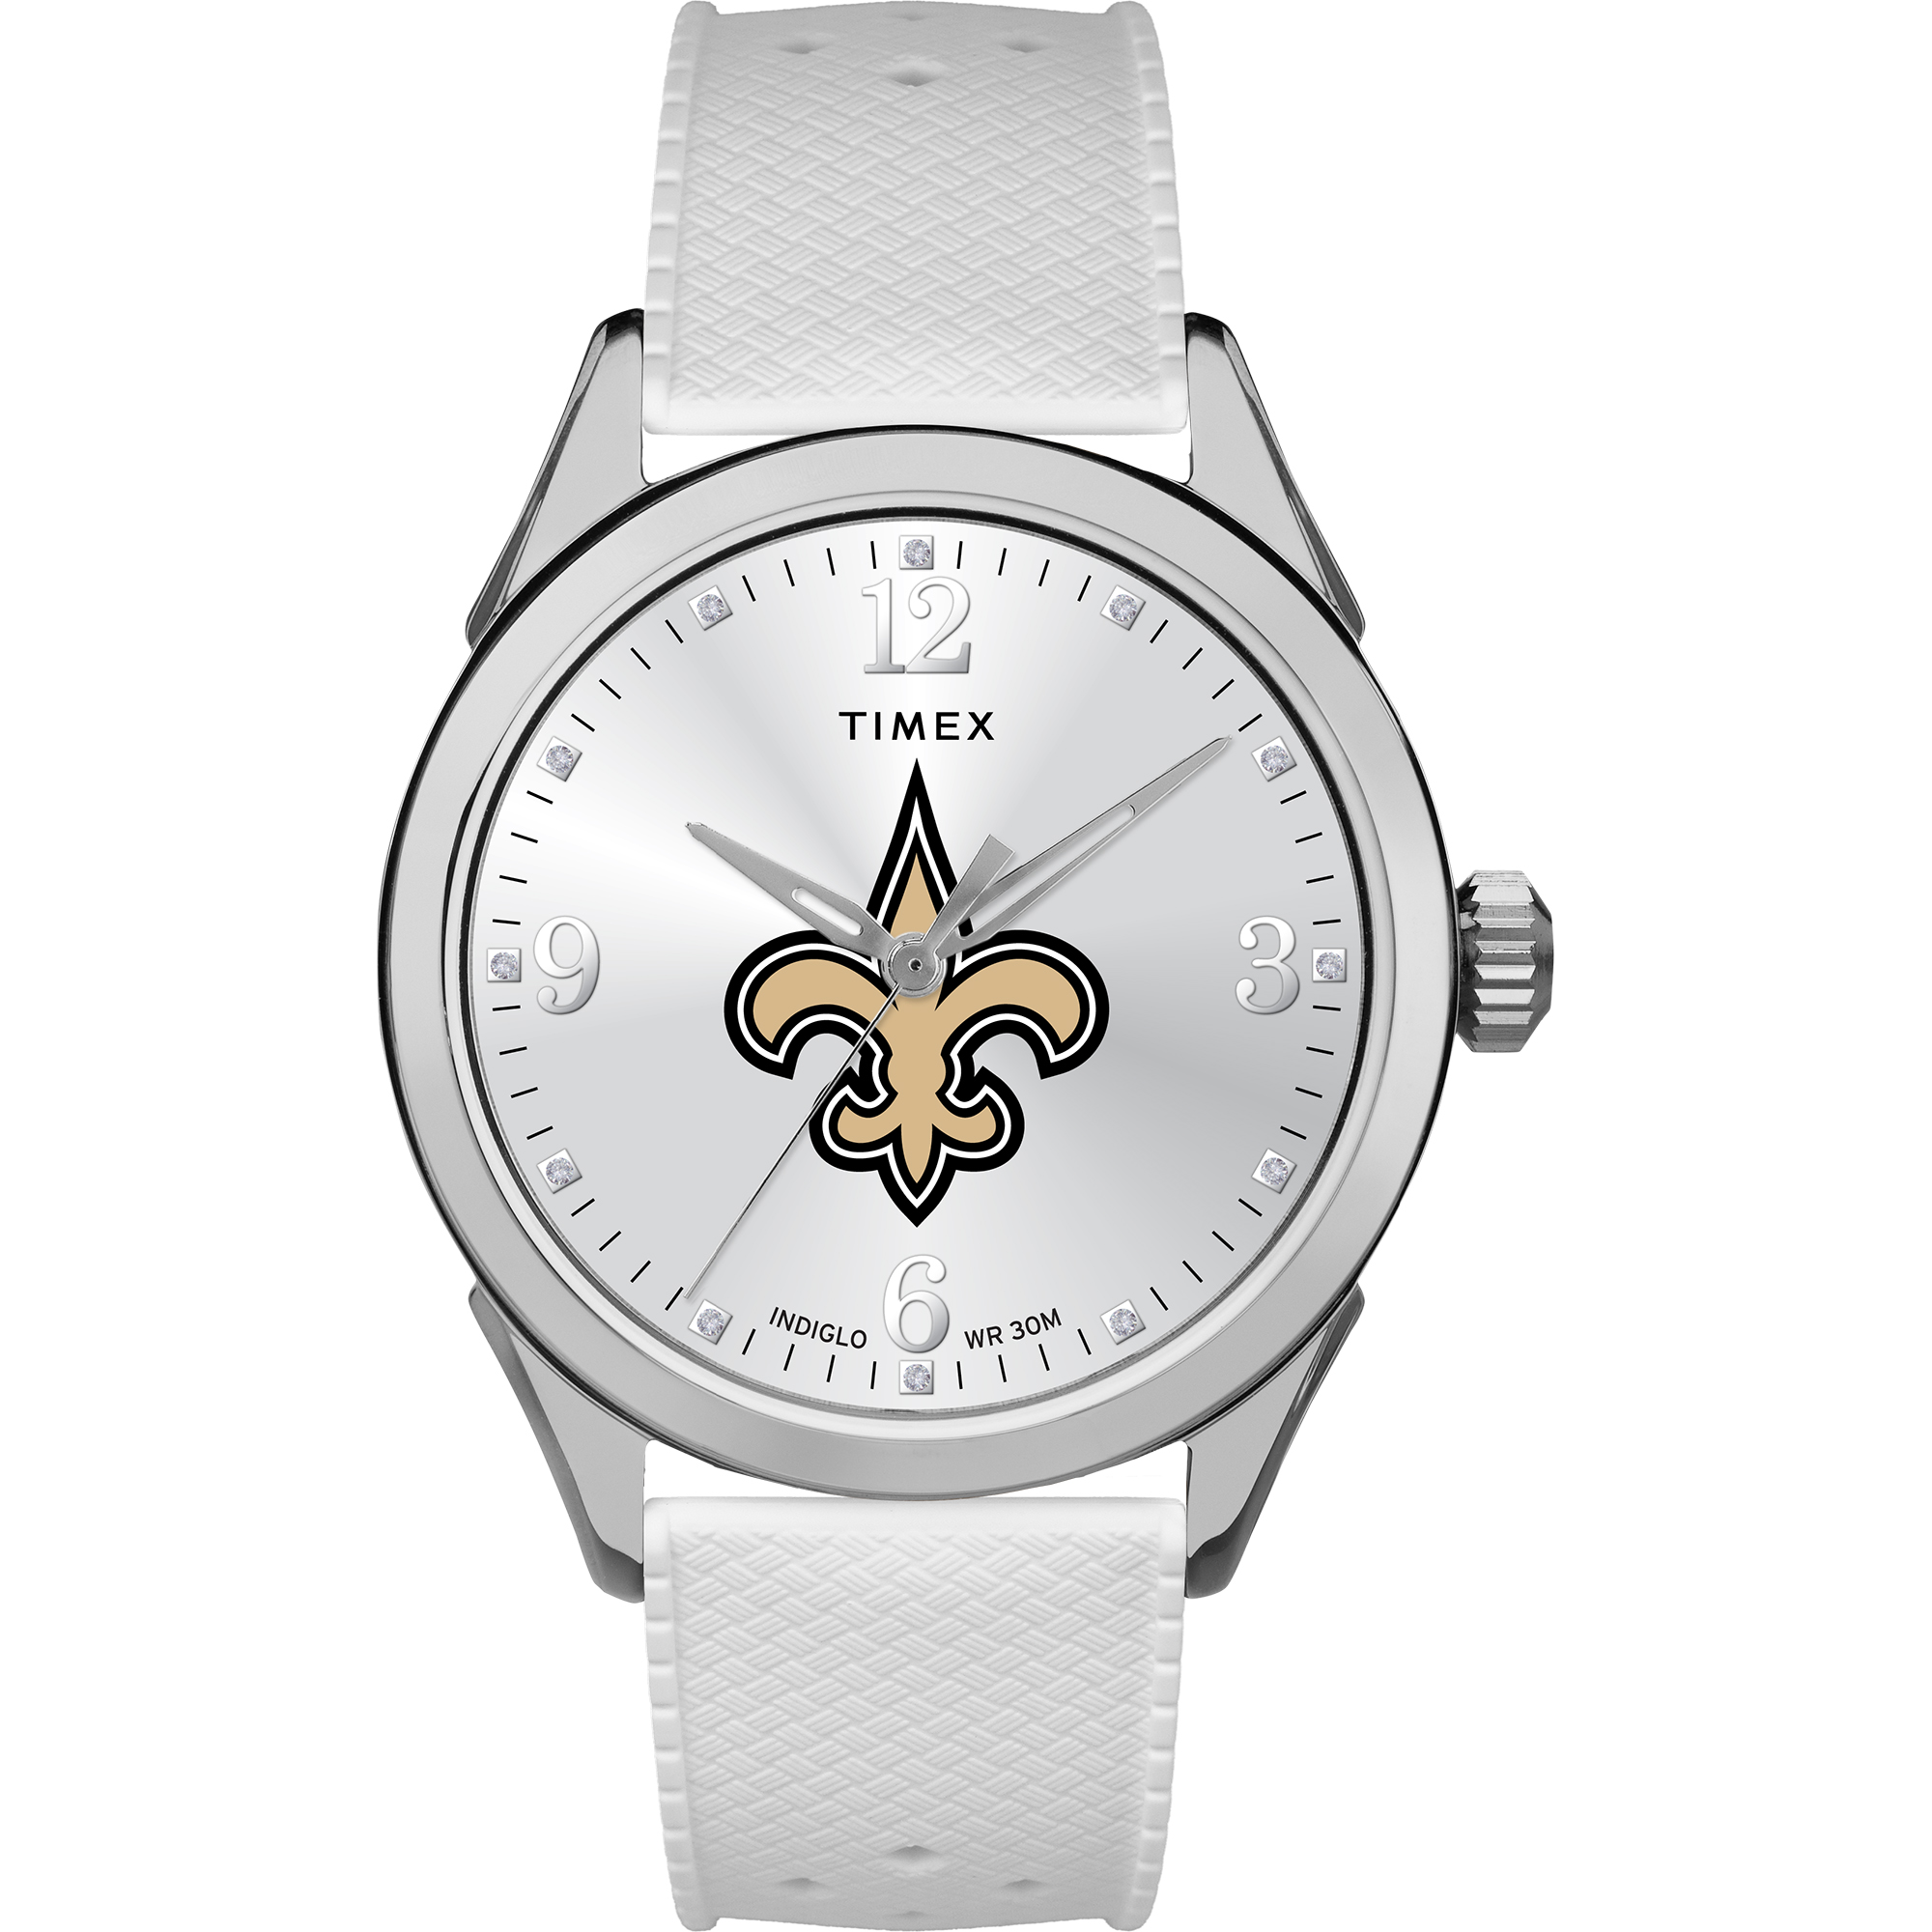 Timex - NFL Tribute Collection Athena Women's Watch, New Orleans Saints